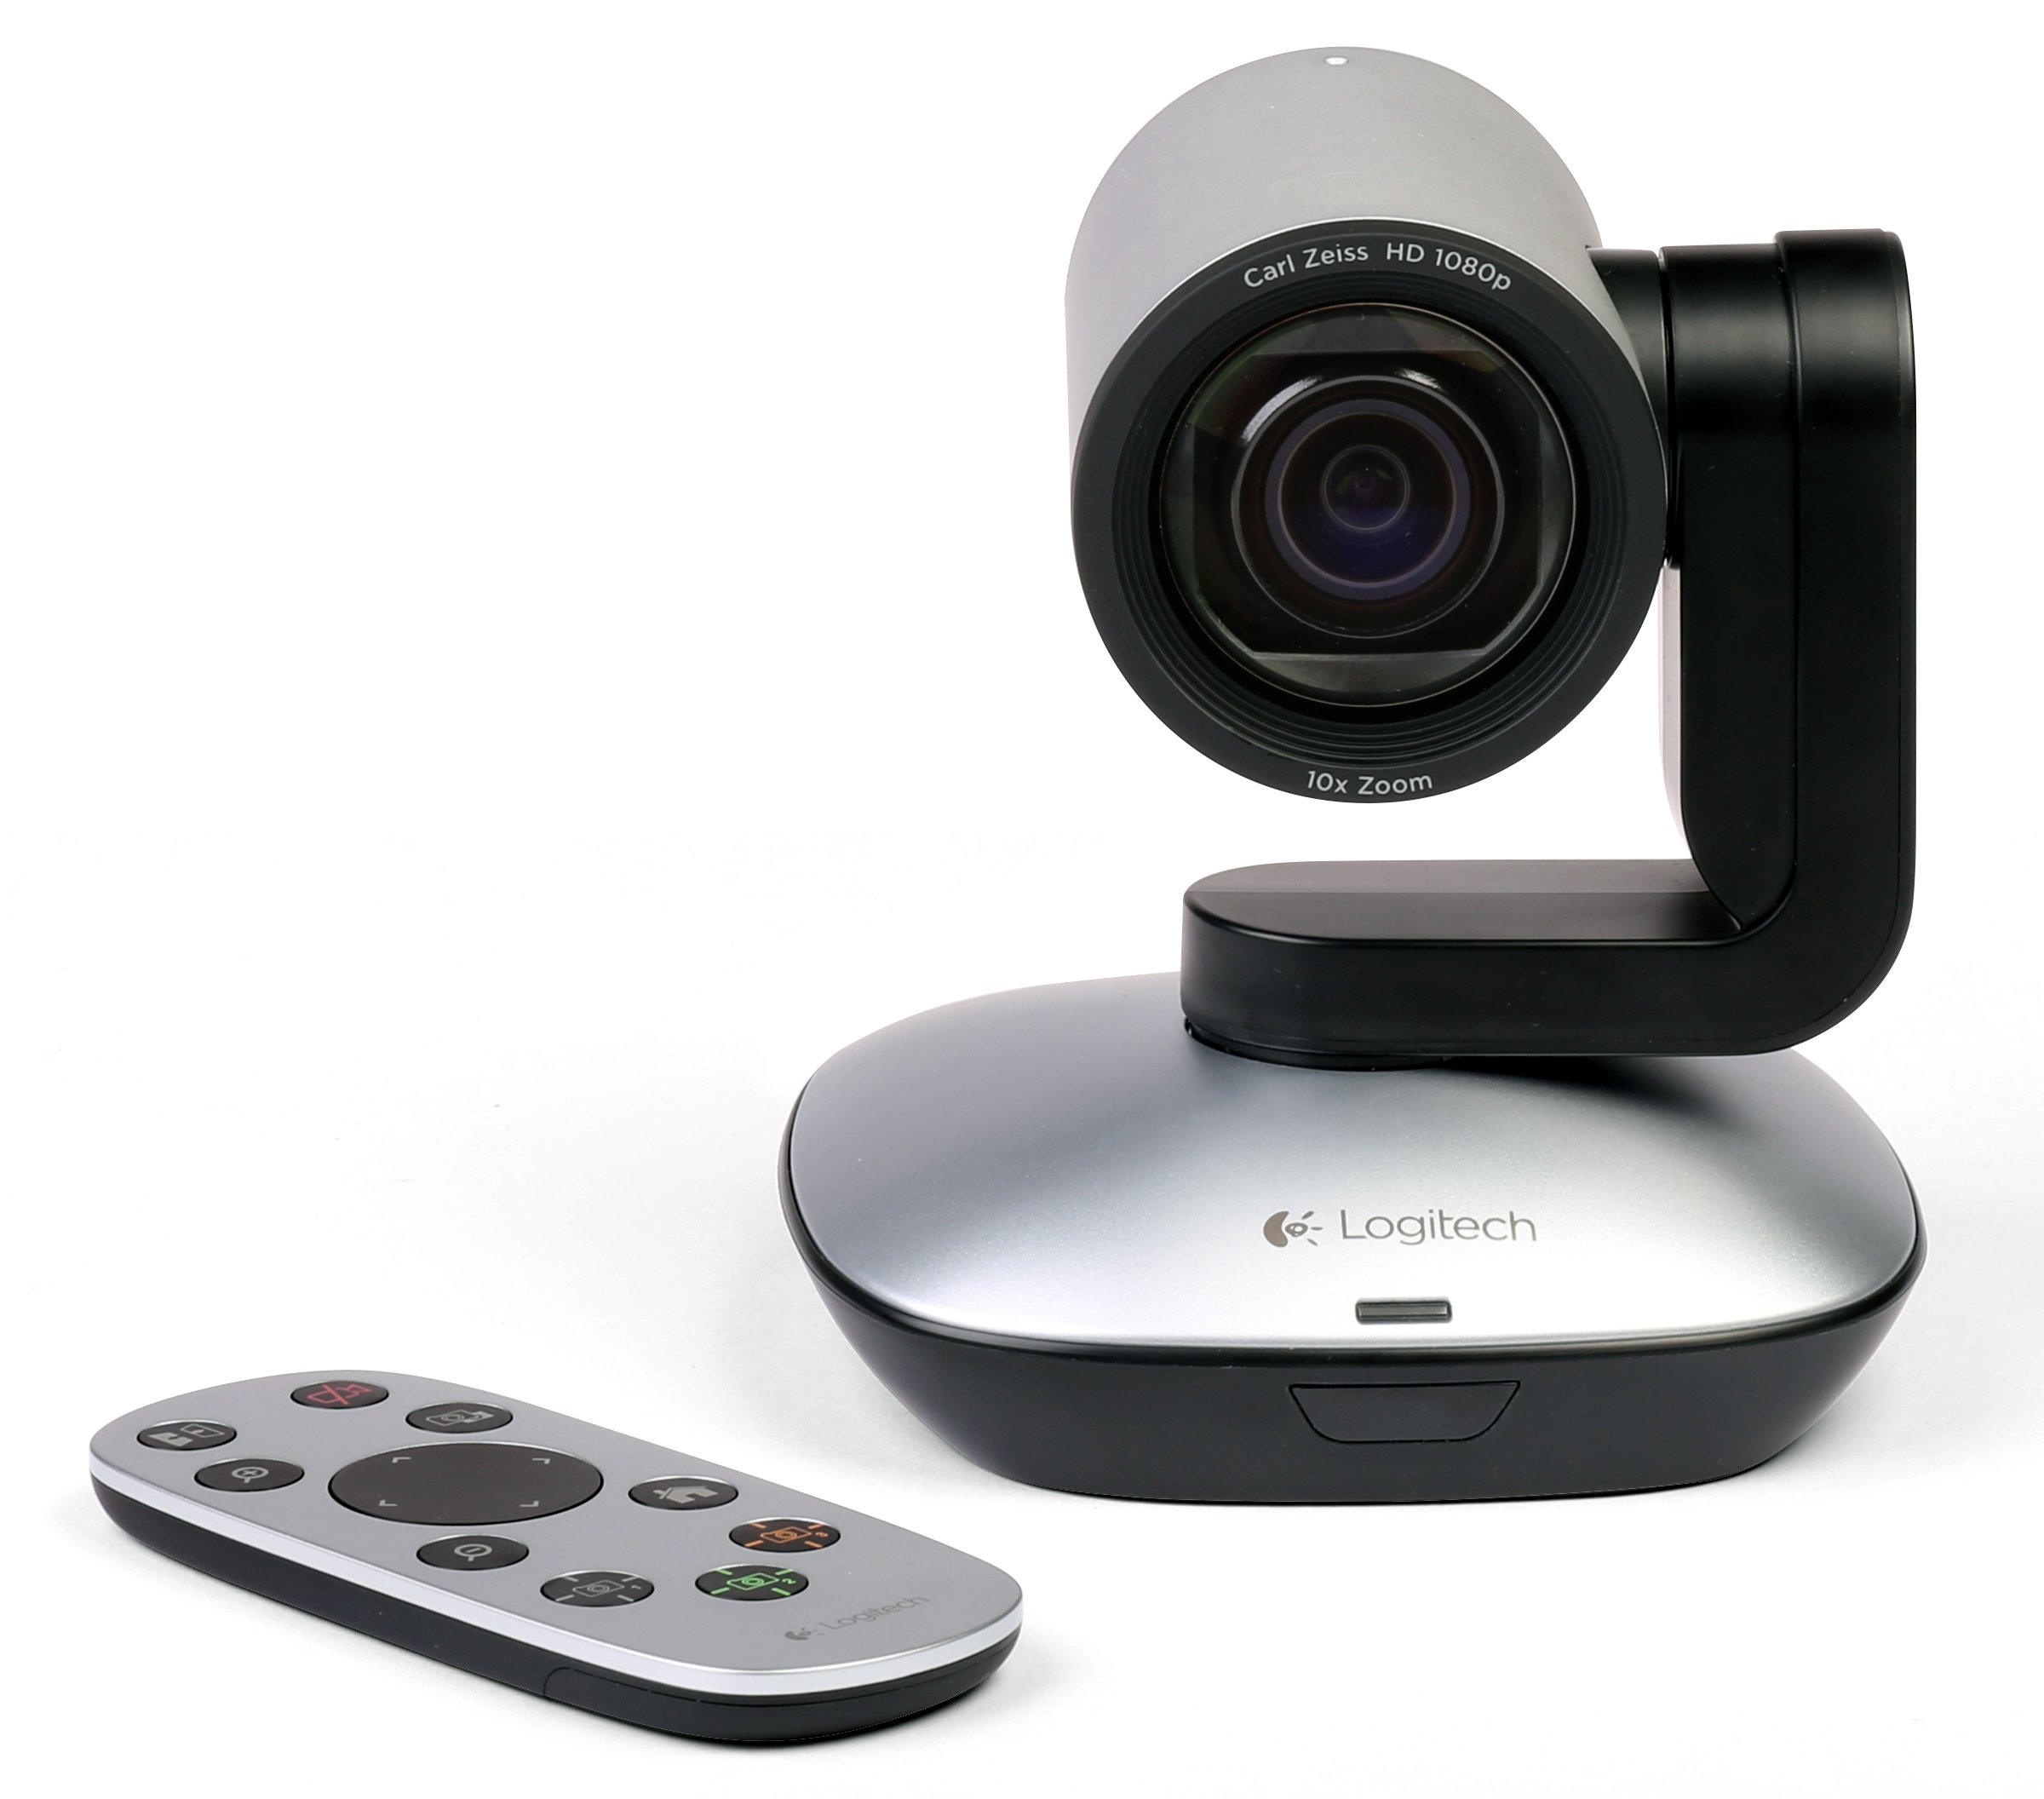 Logitech PTZ Pro Camera - USB HD 1080p PTZ Video Camera for Conference Rooms by Logitech